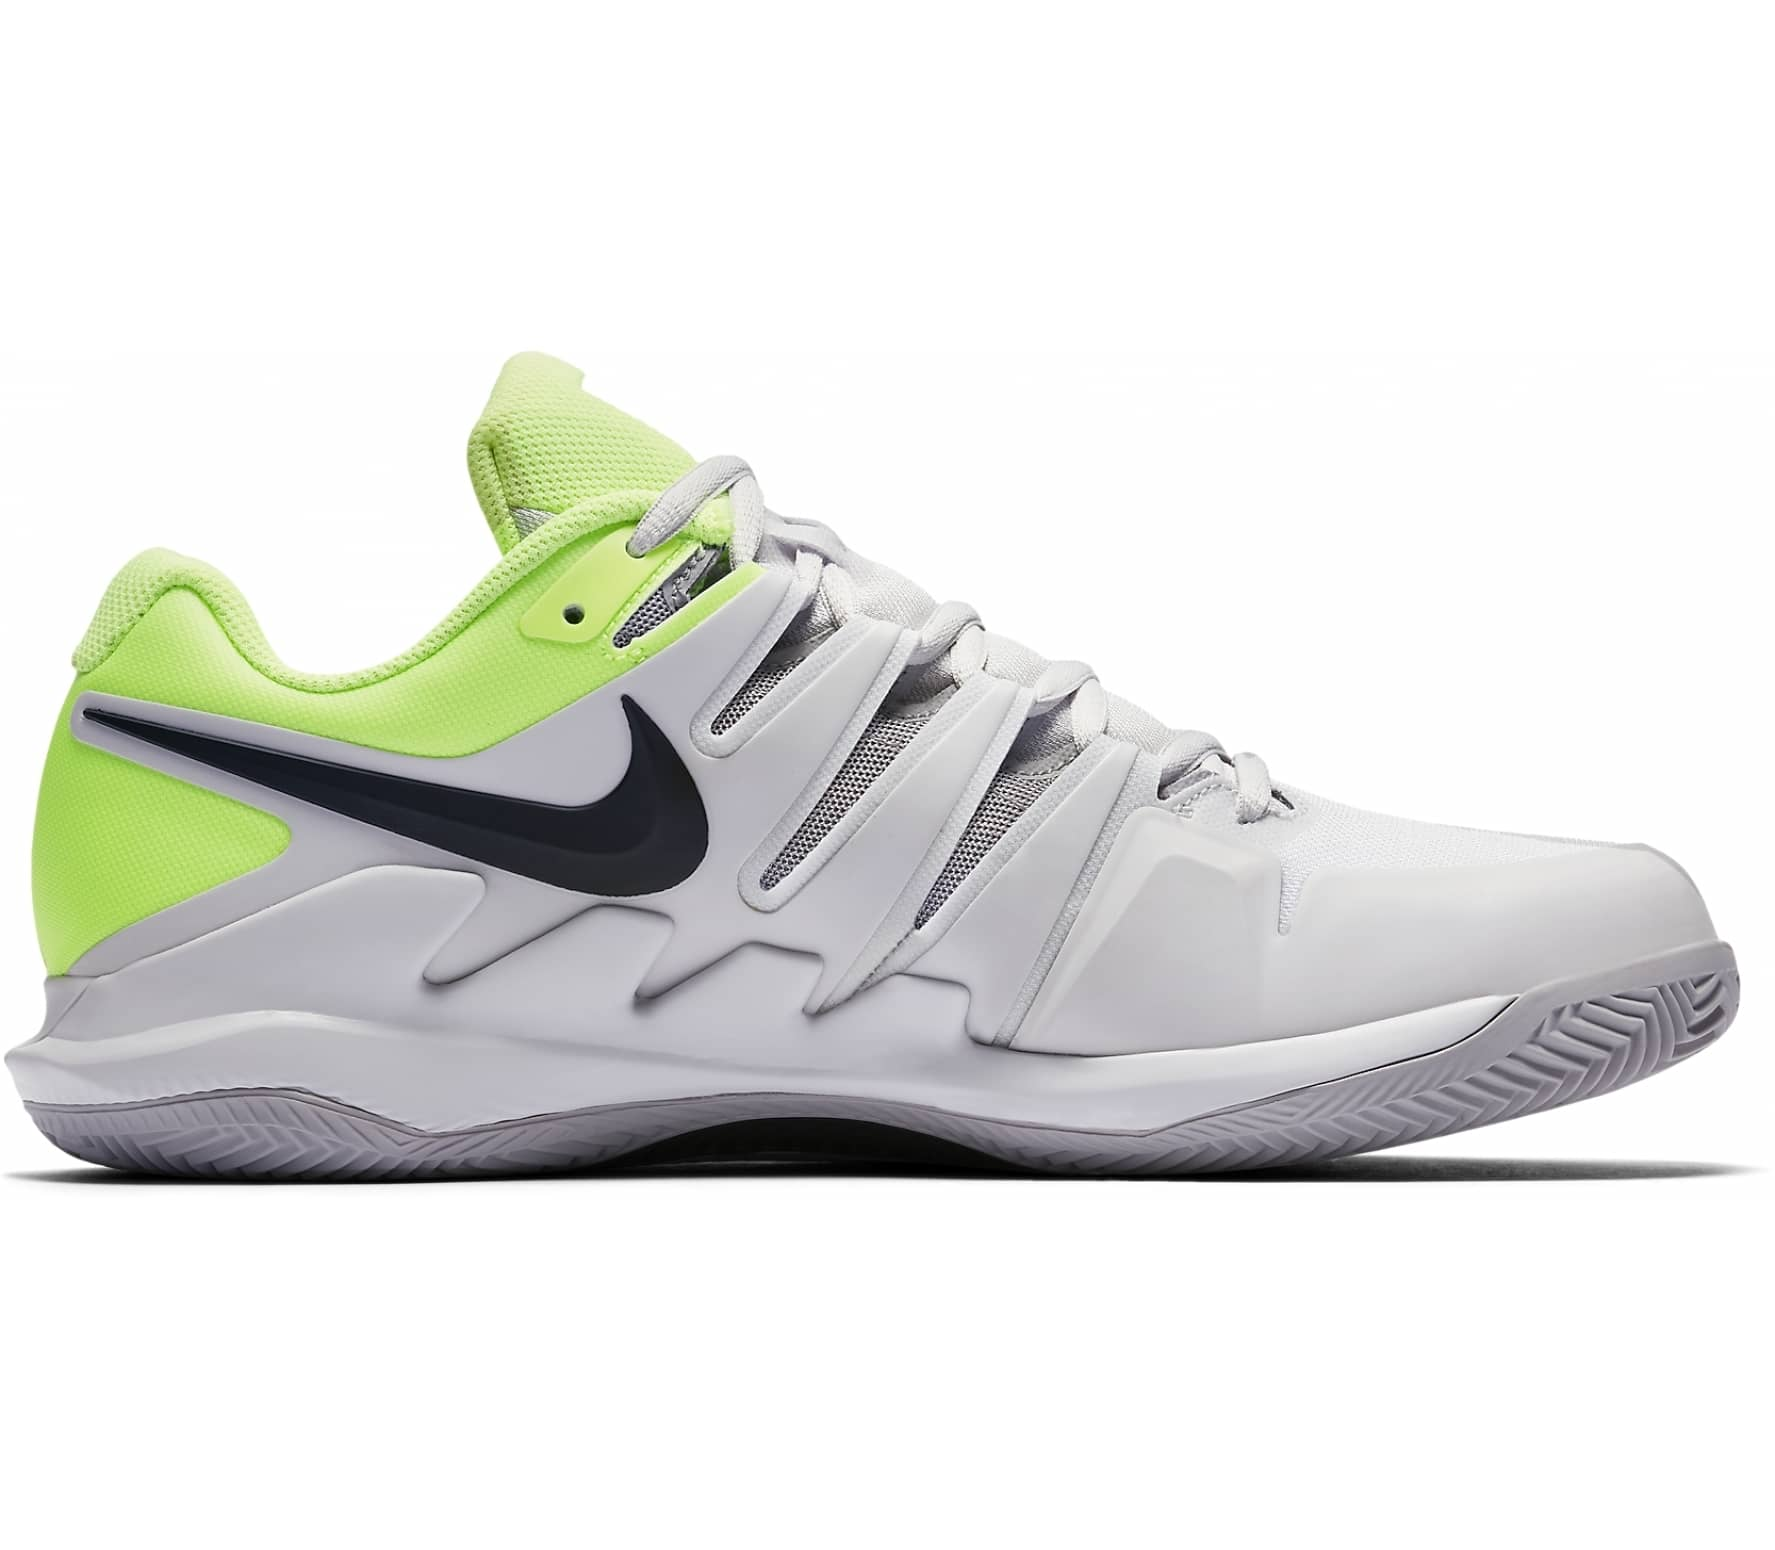 sports shoes bd890 df259 Nike - Air Zoom Vapor X Clay Children tennis shoes (grey yellow)